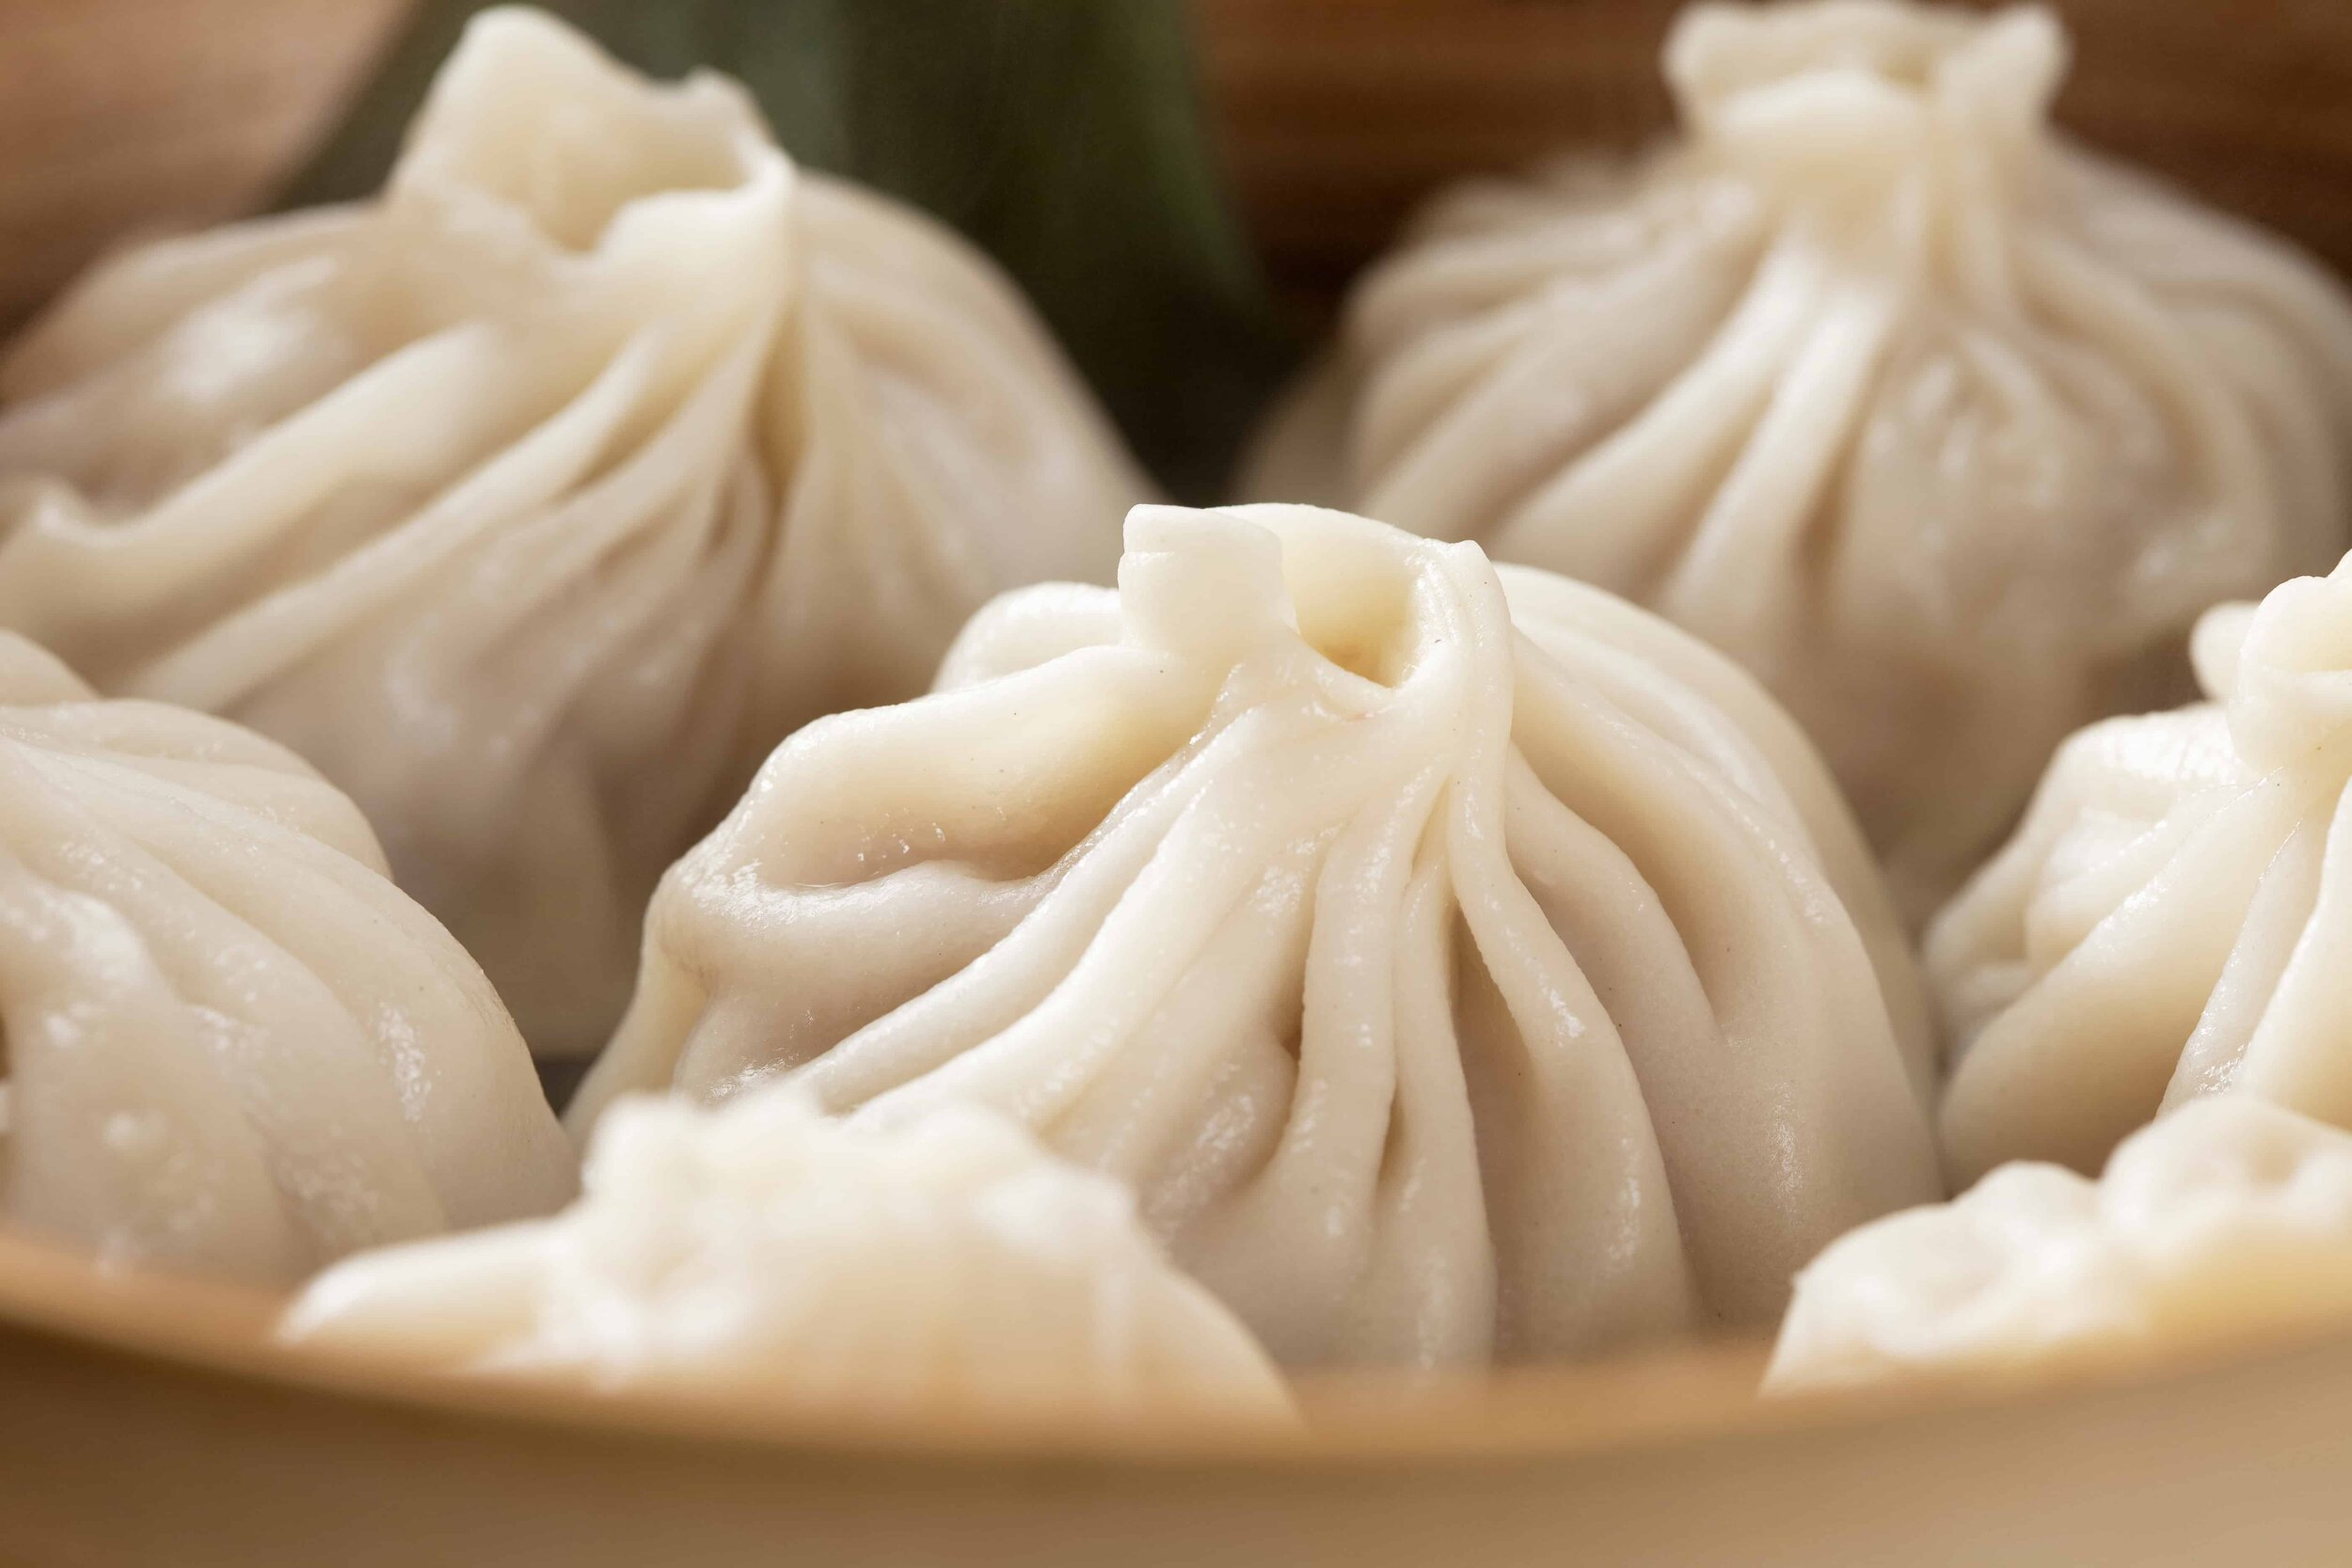 Are Dumplings Healthy? (5 Tips For Weight Loss)